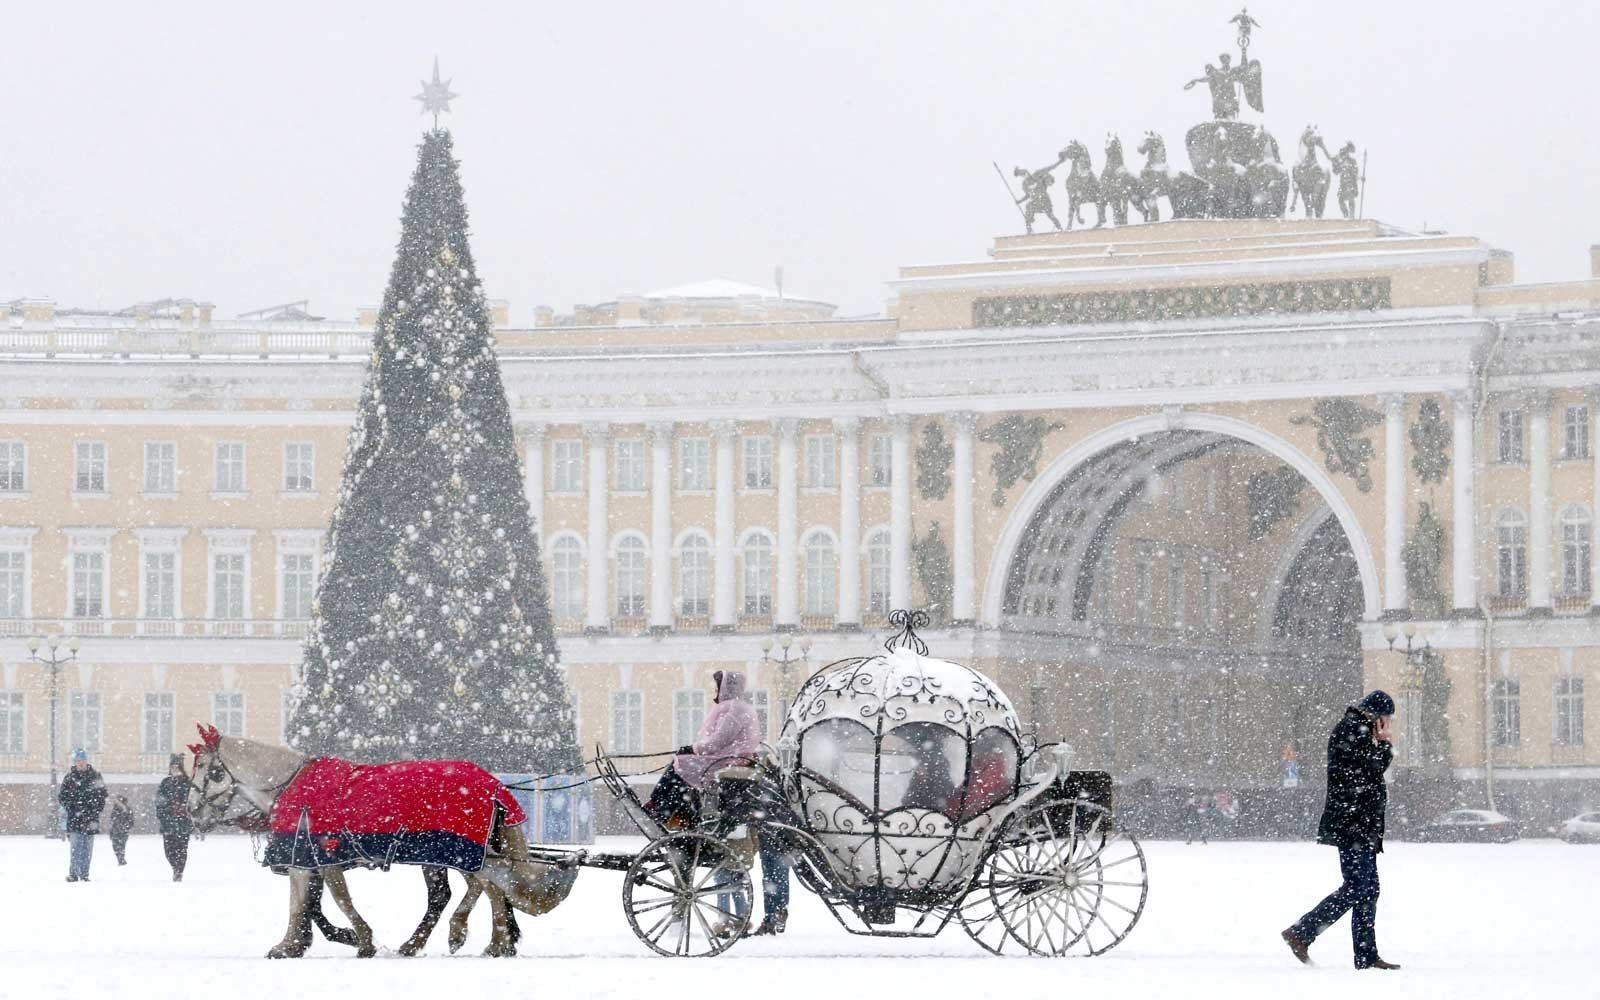 Snowy Christmas scene in St. Petersburg, Russia